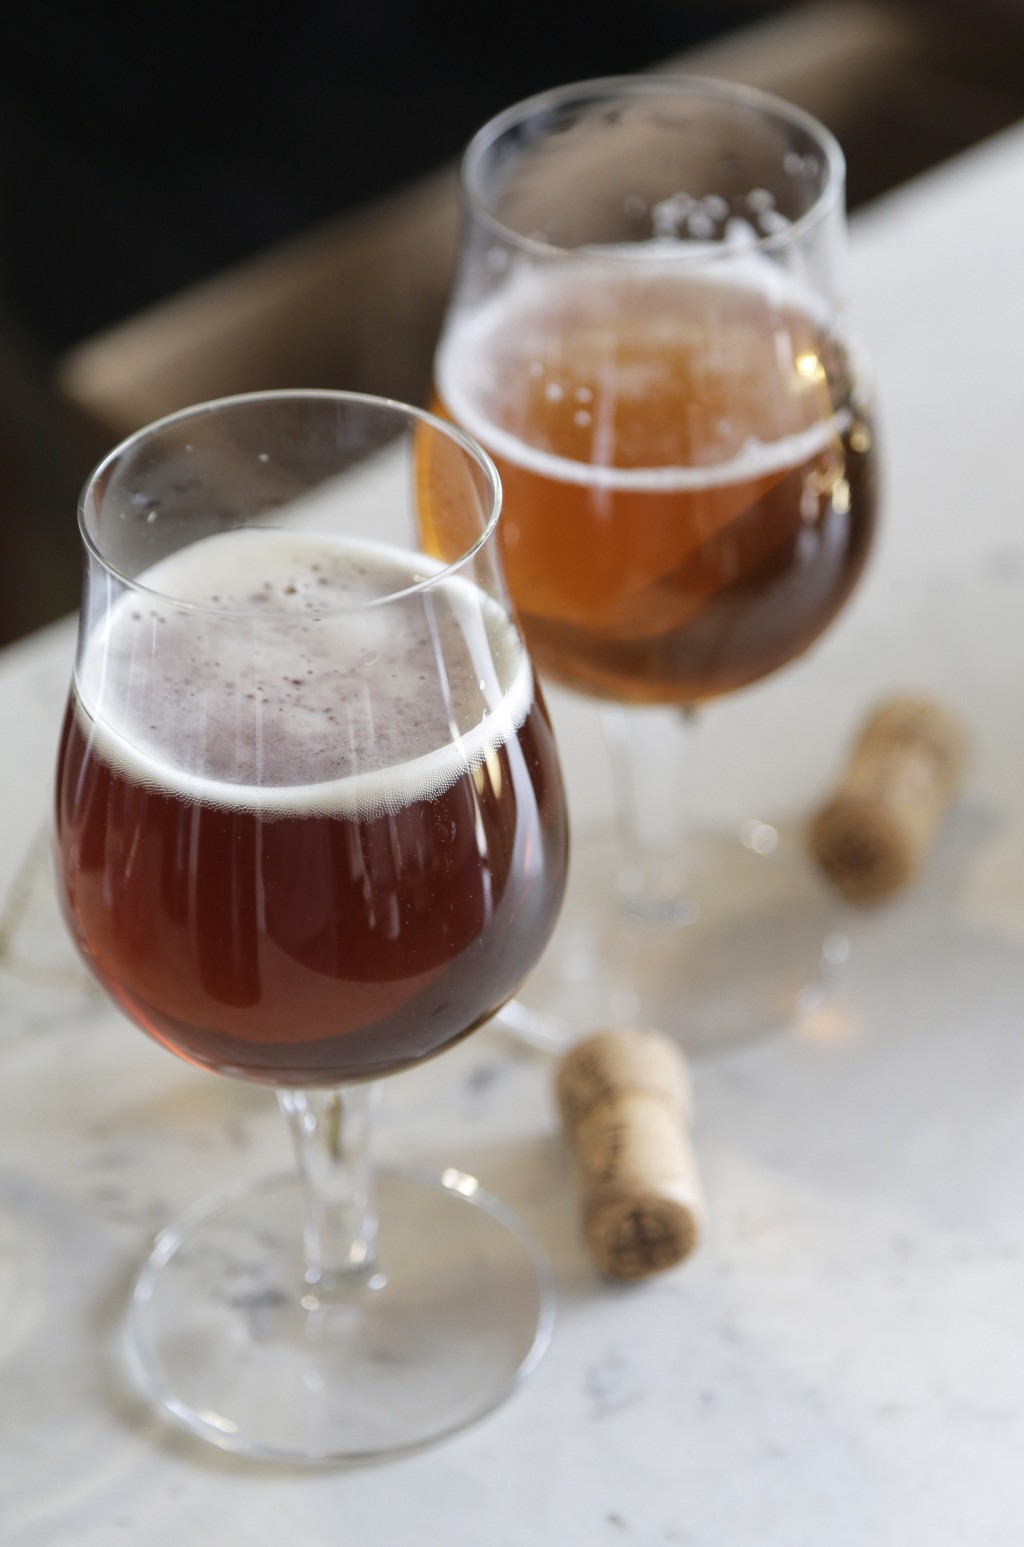 This March 4, 2019, photo shows Deep Ascent, an ale that was brewed using some yeast from beer bottles recovered from the shipwreck of the SS Oregon a